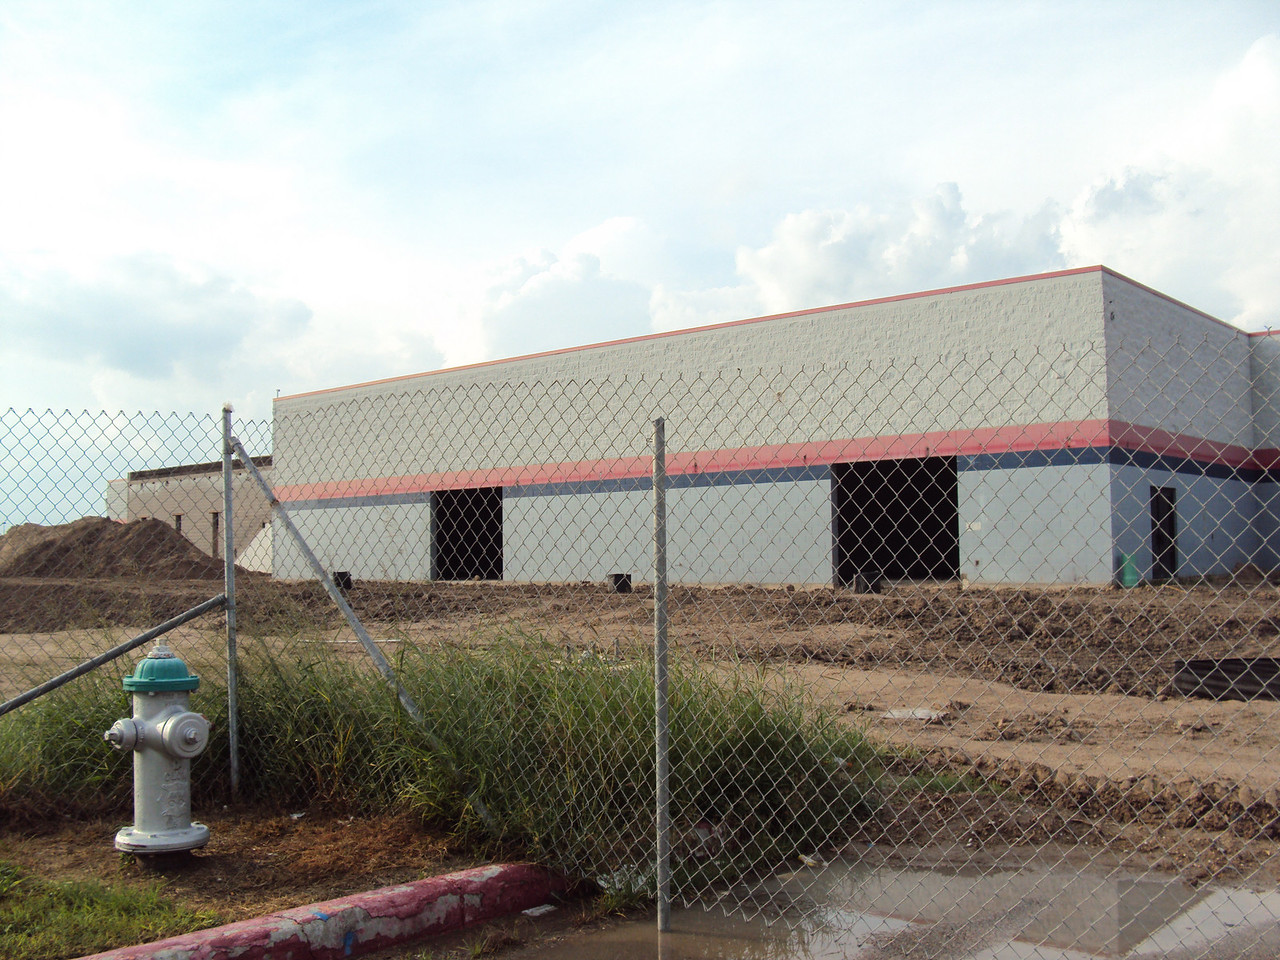 9/26/2010 - Southeast side of the building